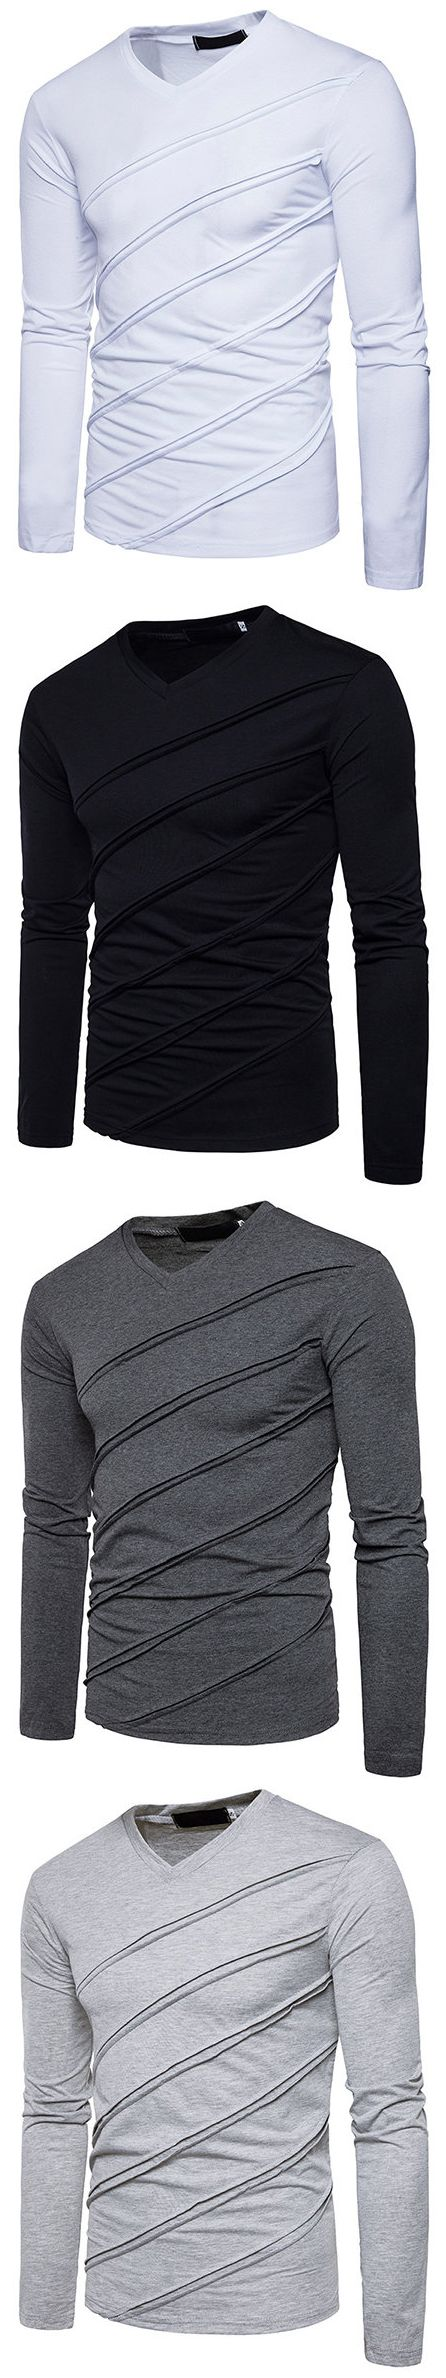 US$18.57#Mens Folding Design Solid Color V-Neck Long Sleeve Regular Fit Casual Tops